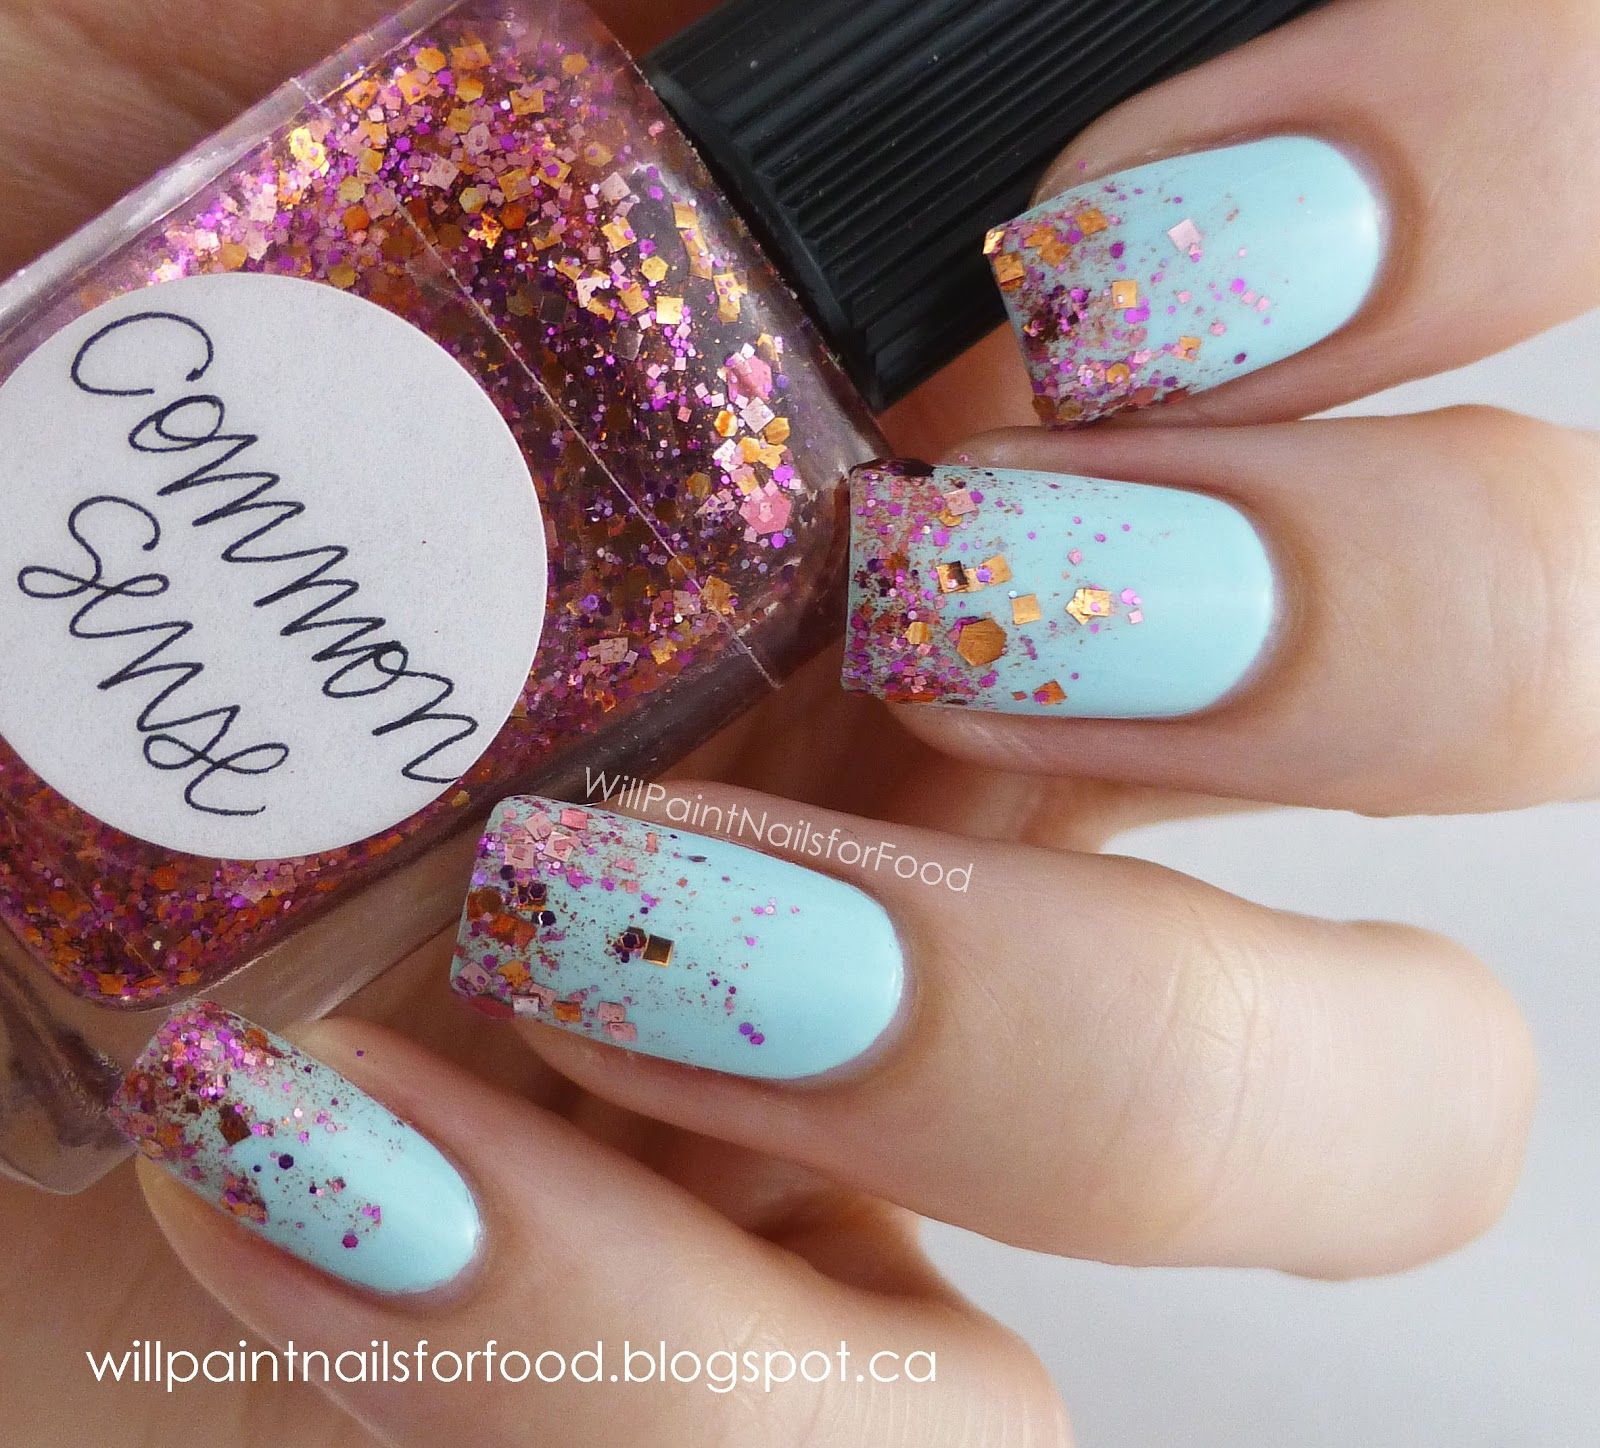 Will Paint Nails for Food Lynnderella Common Sense...holy